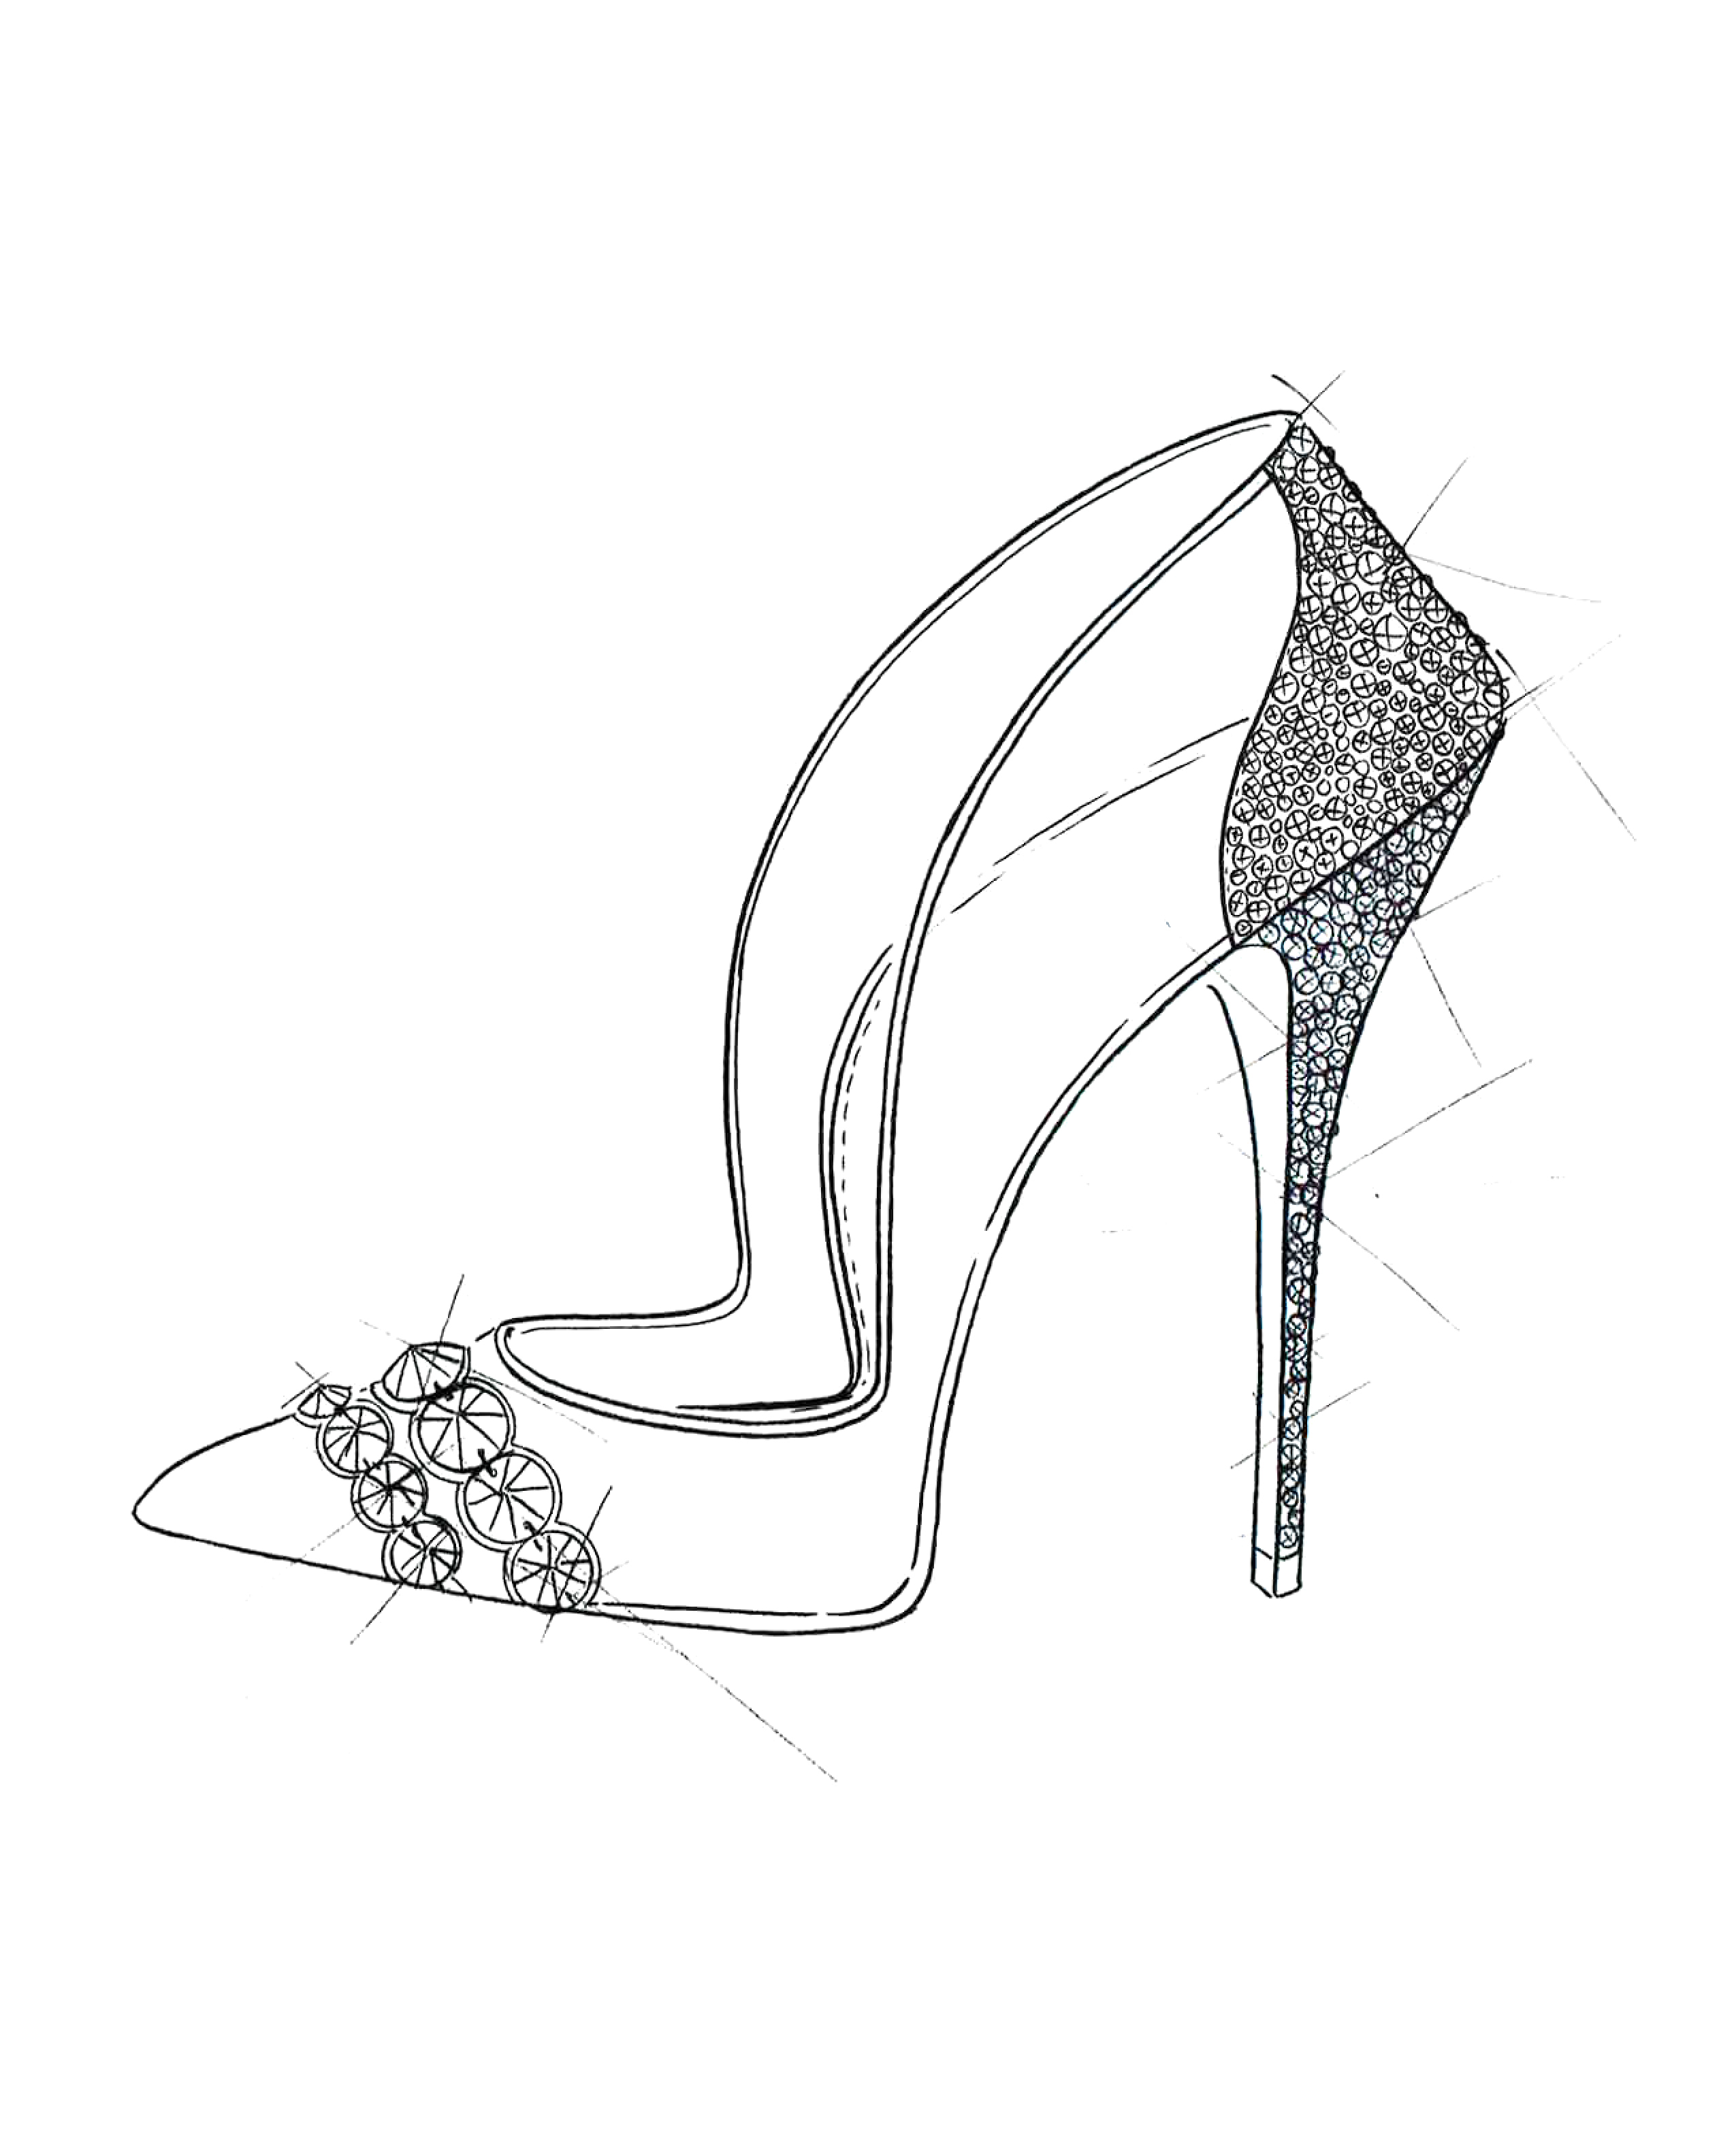 Disney Enlists Nine Global Luxury Shoe Designers To Reimagine Cinderellas Glass Slipper